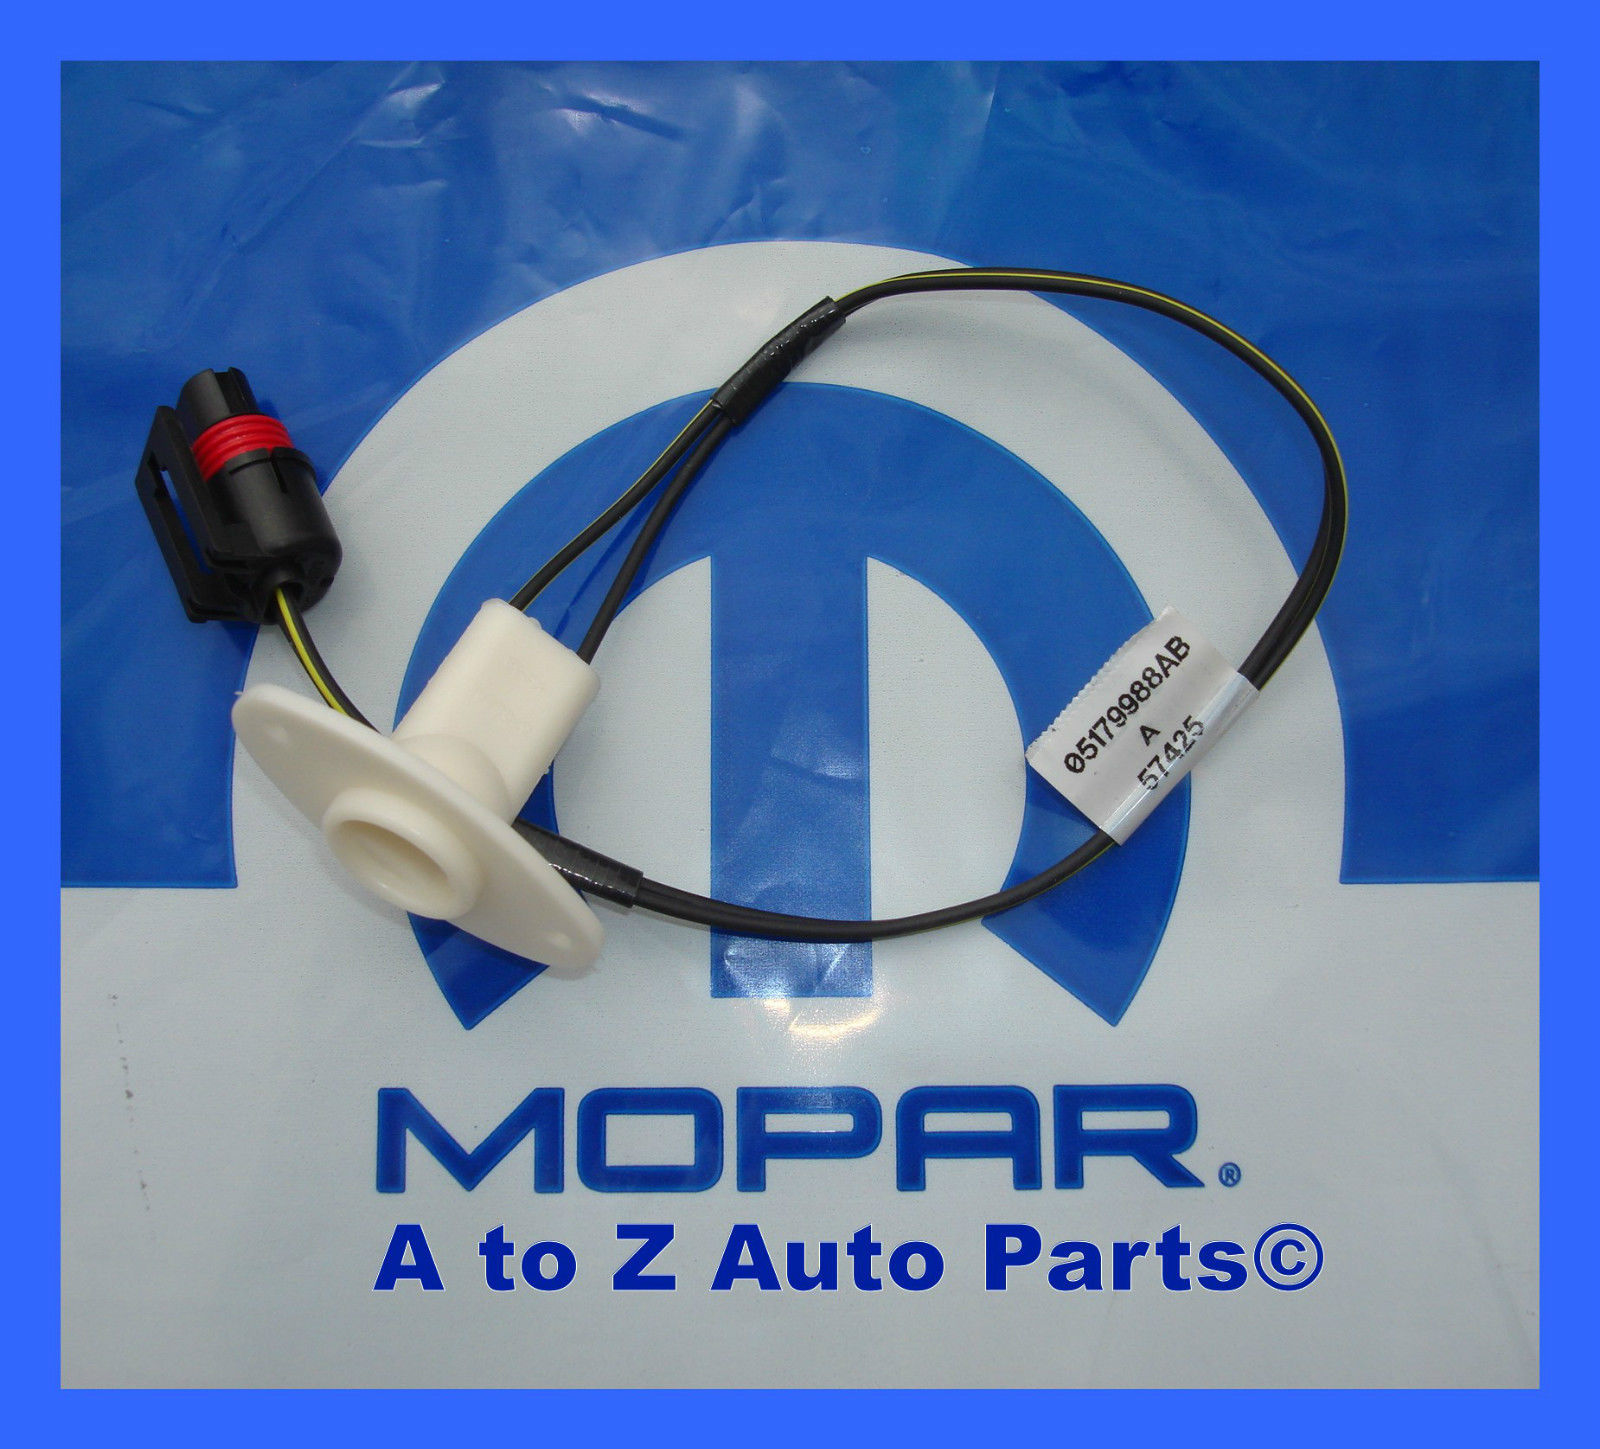 Mopar License Plate 20 Listings Vintage Wiring Harness New 1994 2001 Dodge Ram Lamp Oem 1695